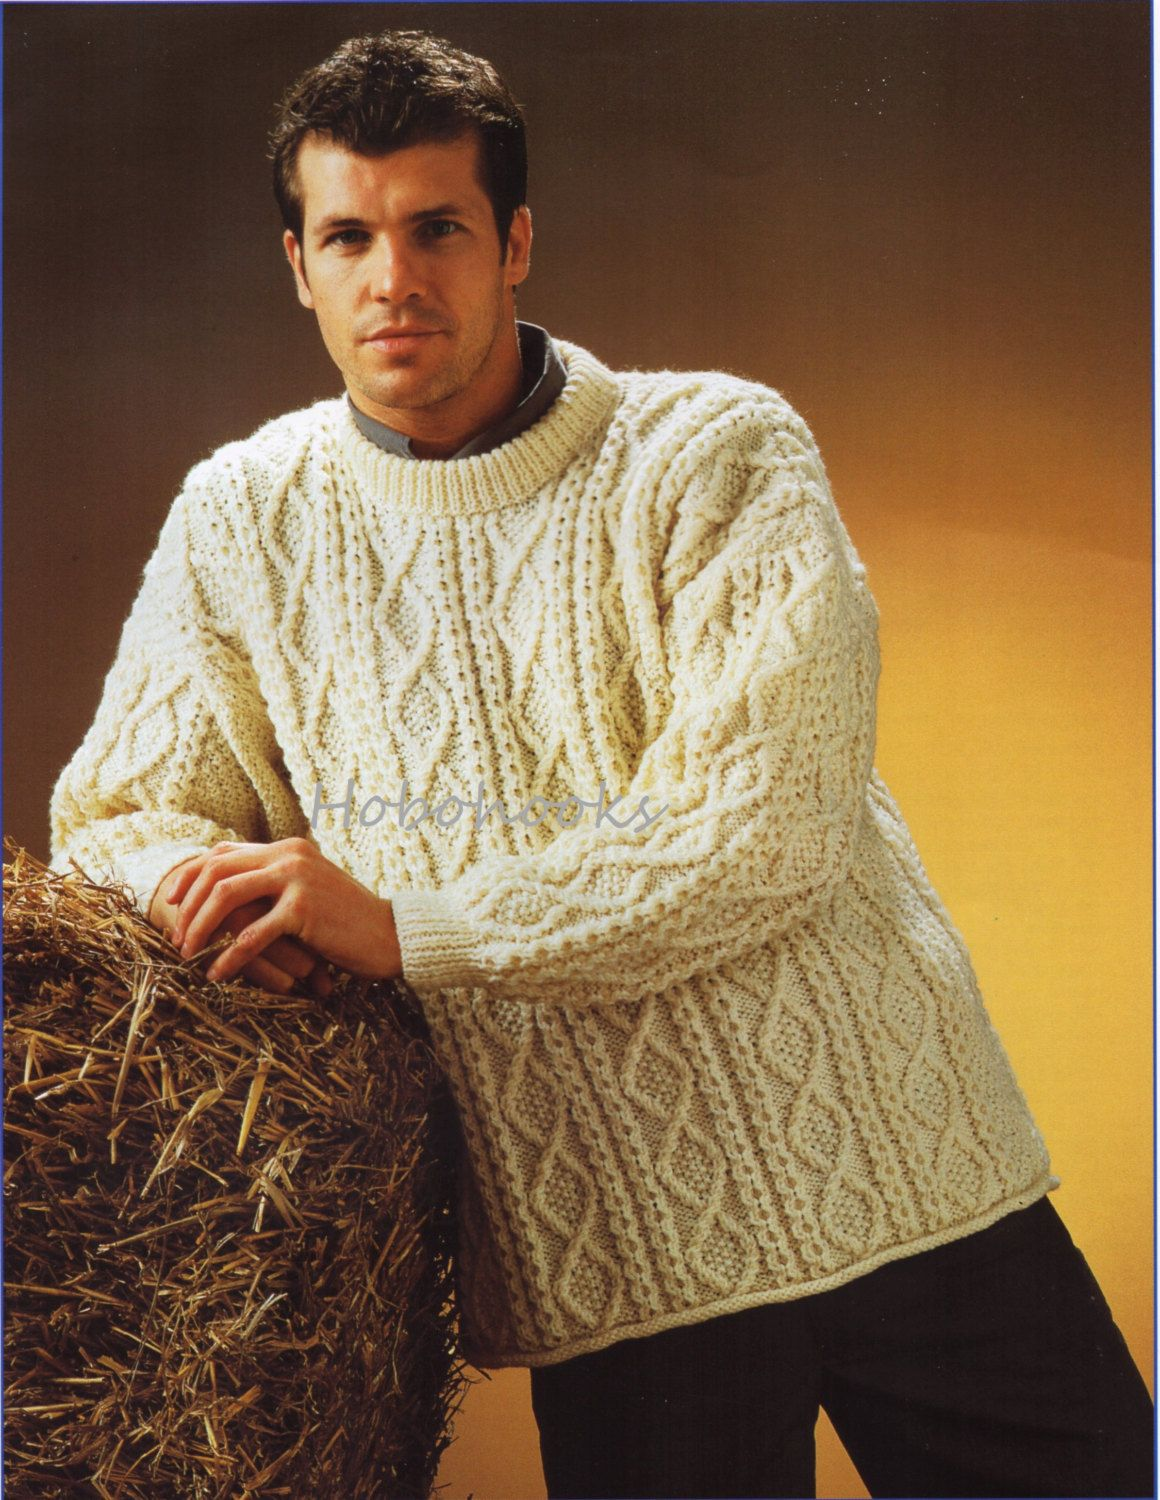 mens aran sweater knitting pattern 34-52 inches by Hobohooks ...